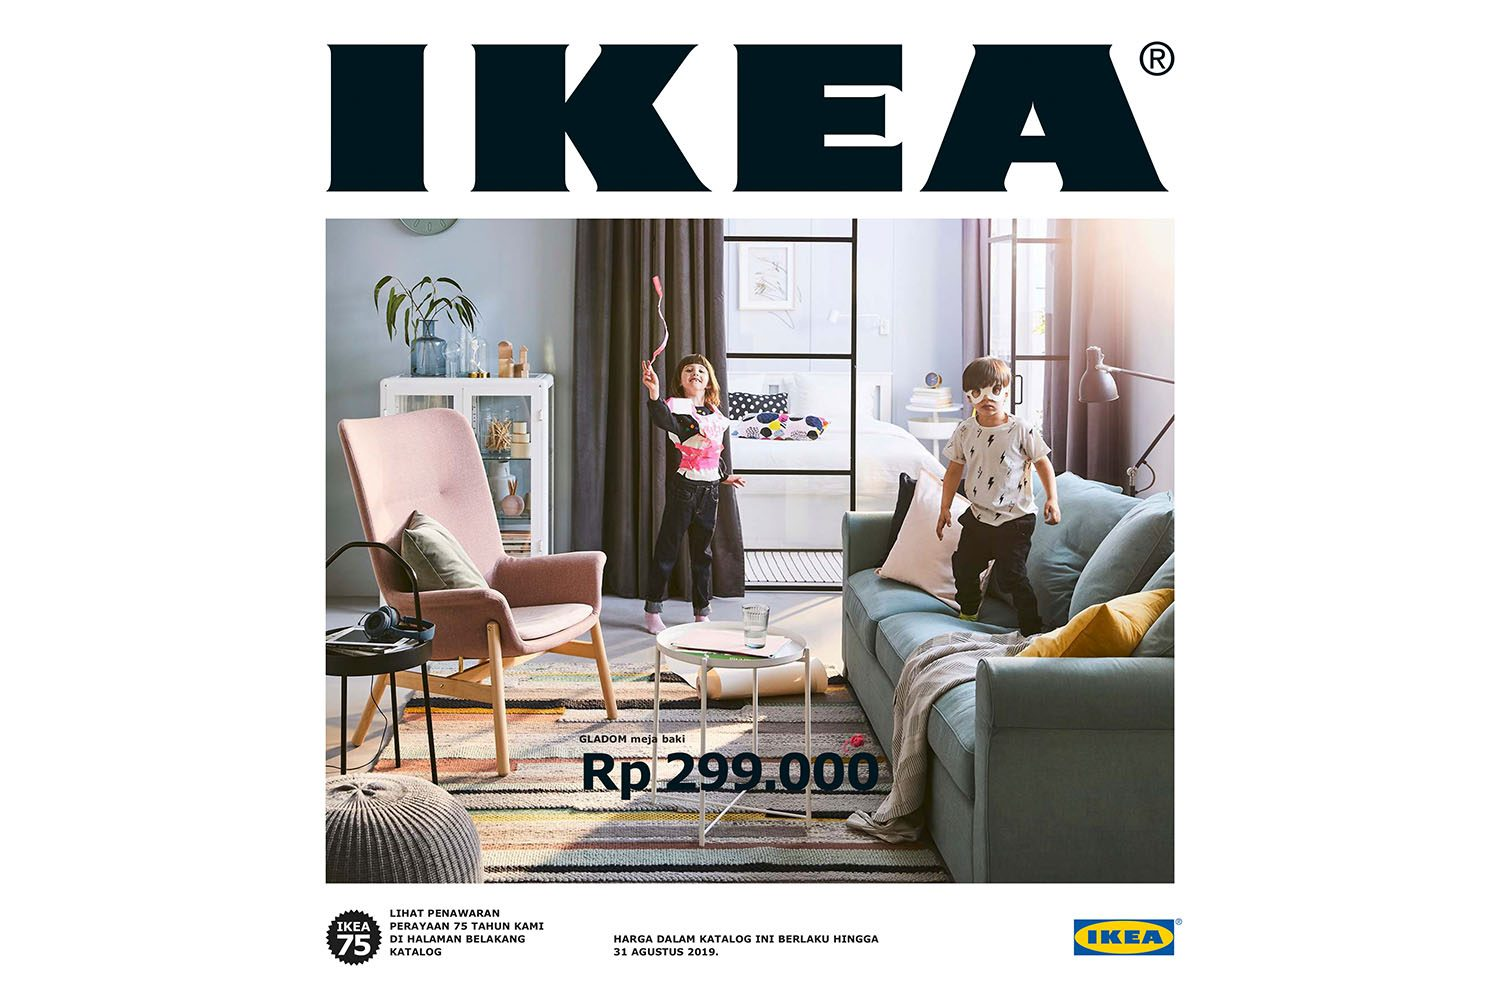 IKEA INDONESIA CATALOGUE 2019 THUMBNAIL